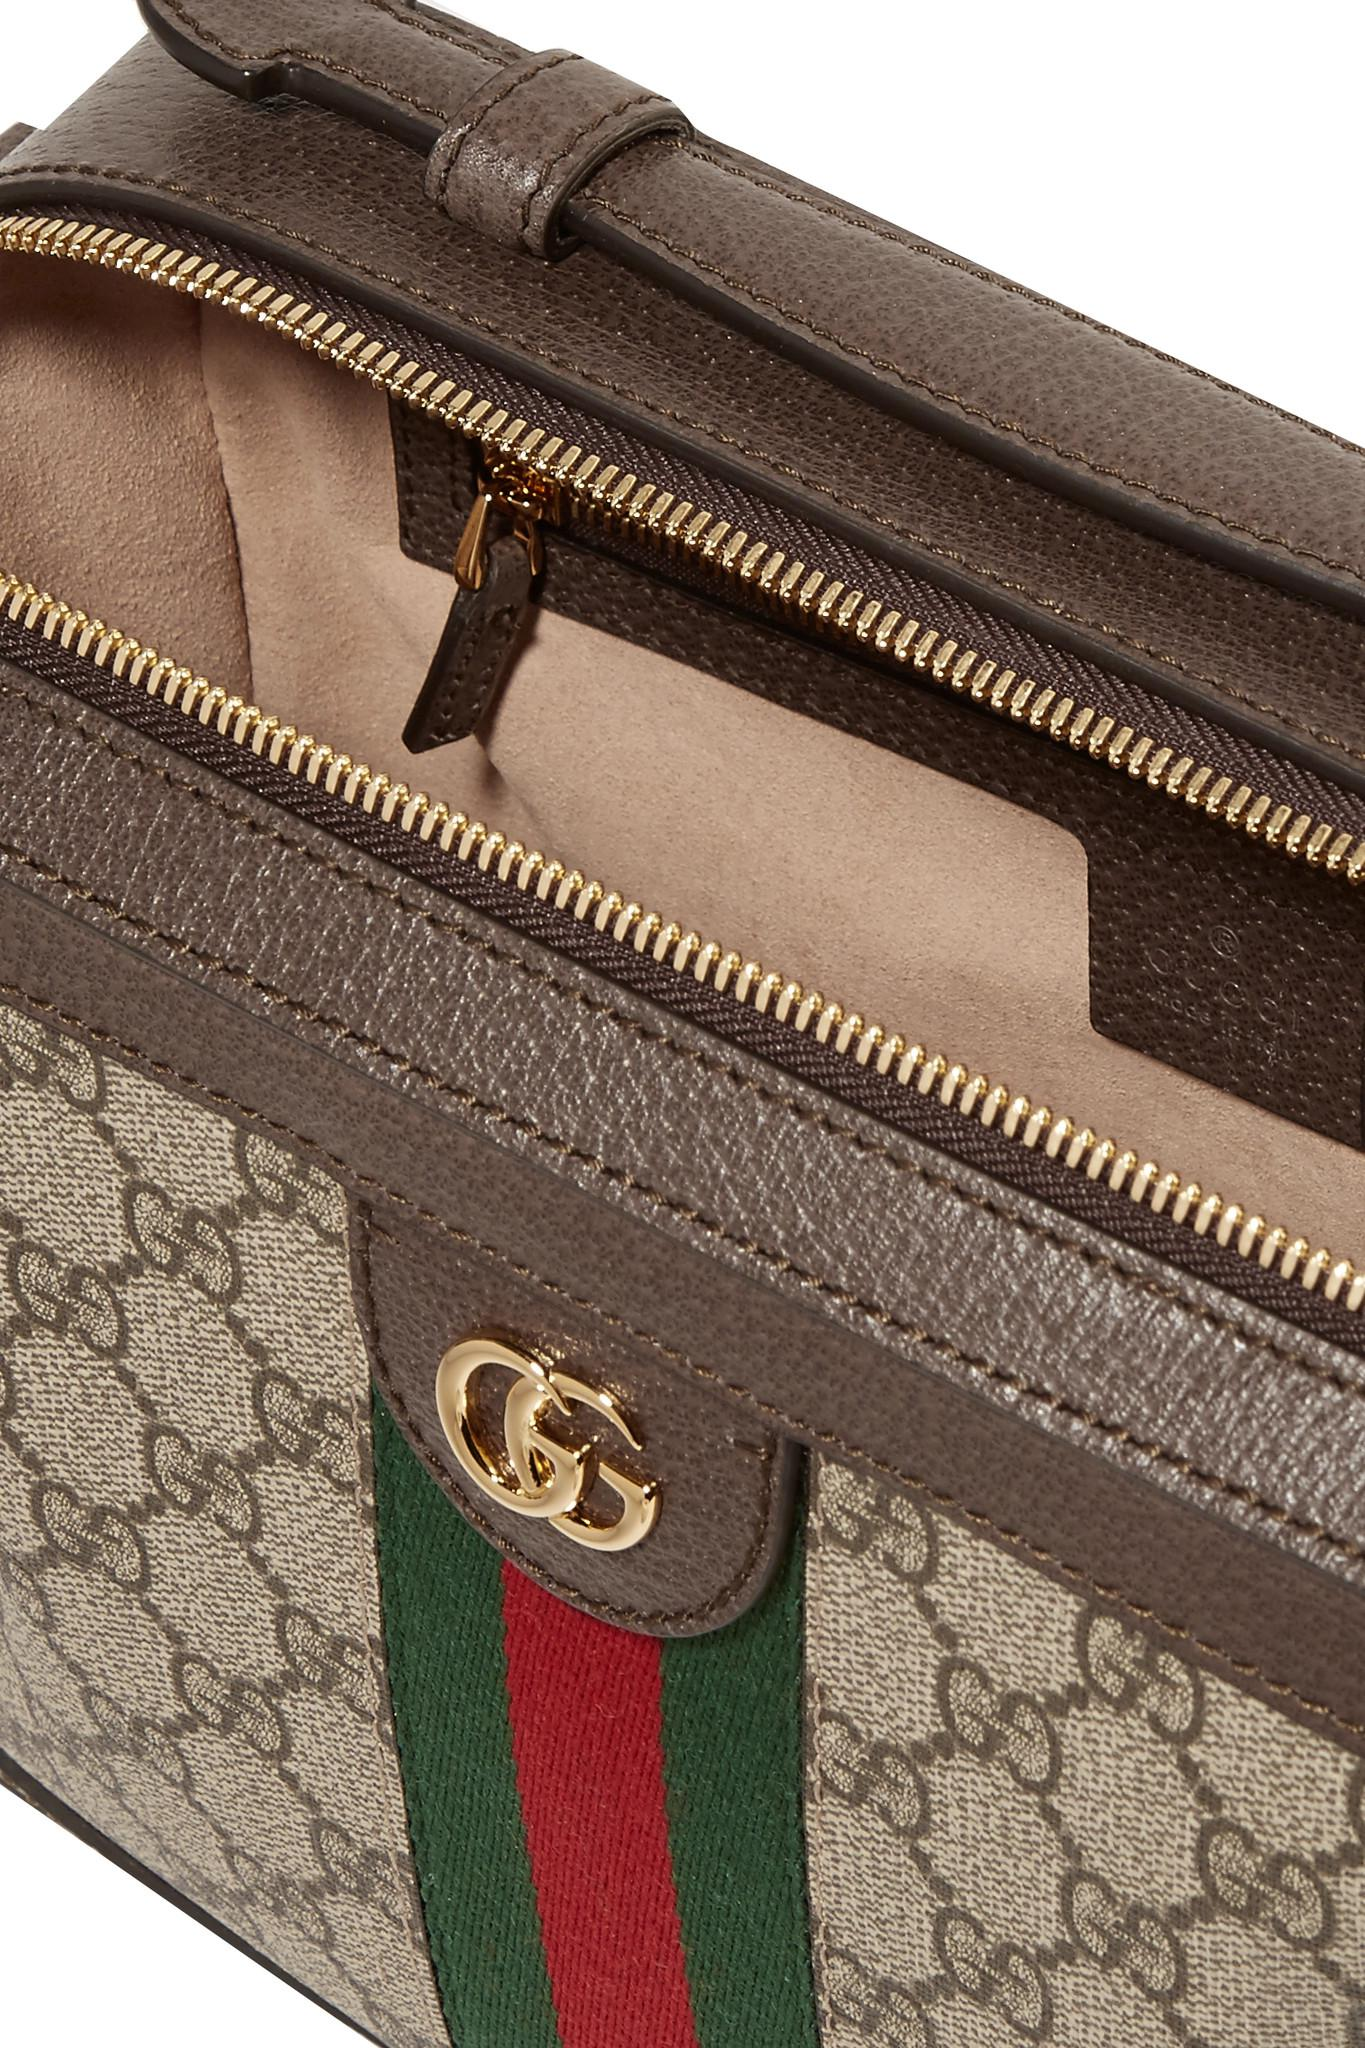 Gucci - Brown Ophidia Small Textured Leather-trimmed Printed Coated-canvas  Camera Bag -. View fullscreen 6da7cf217853a